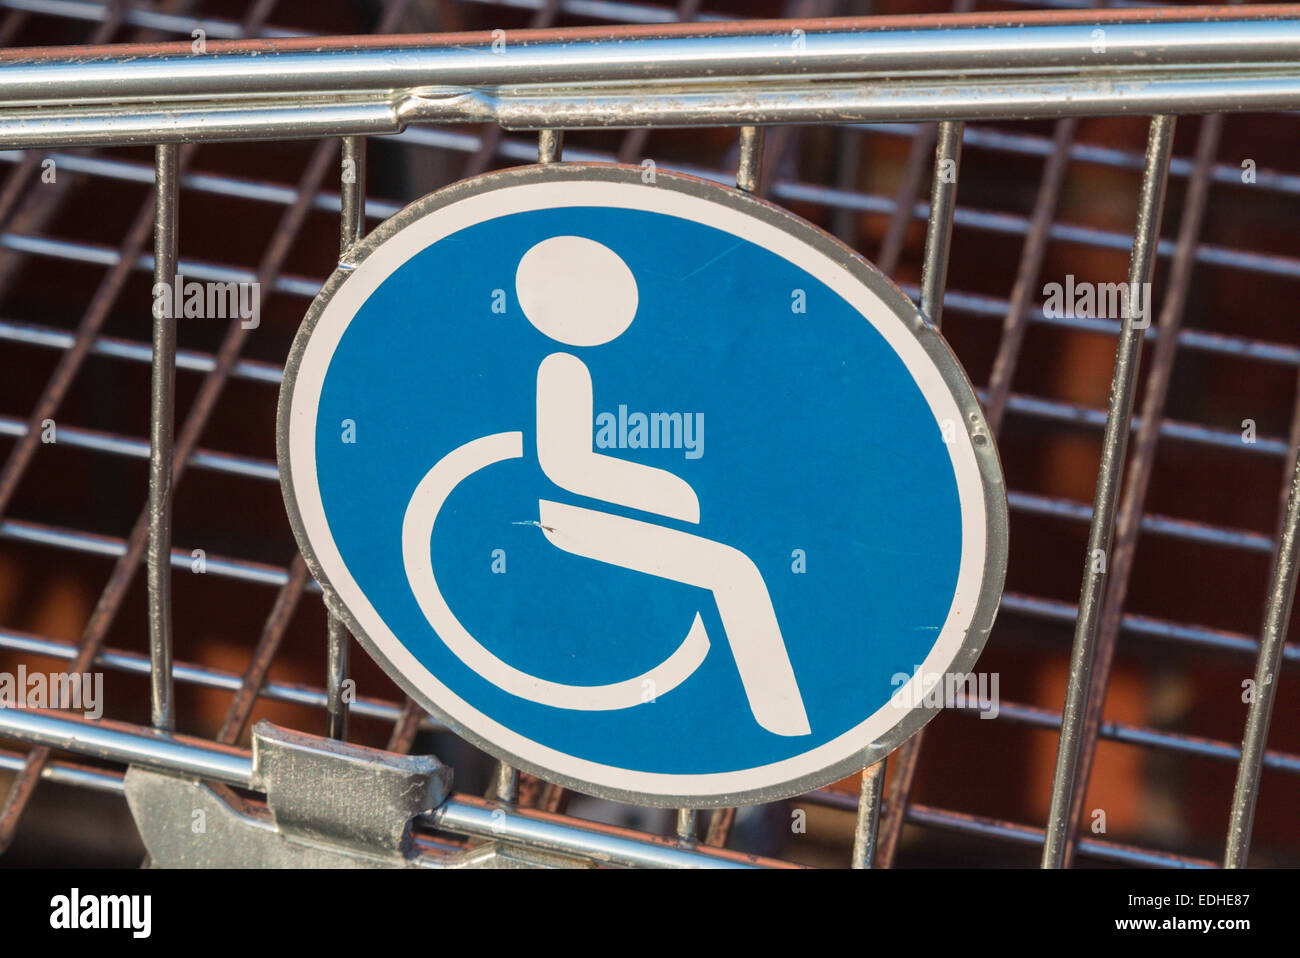 Wheelchair user disabled sign on a shopping cart /trolley extension for wheelchair users - Stock Image